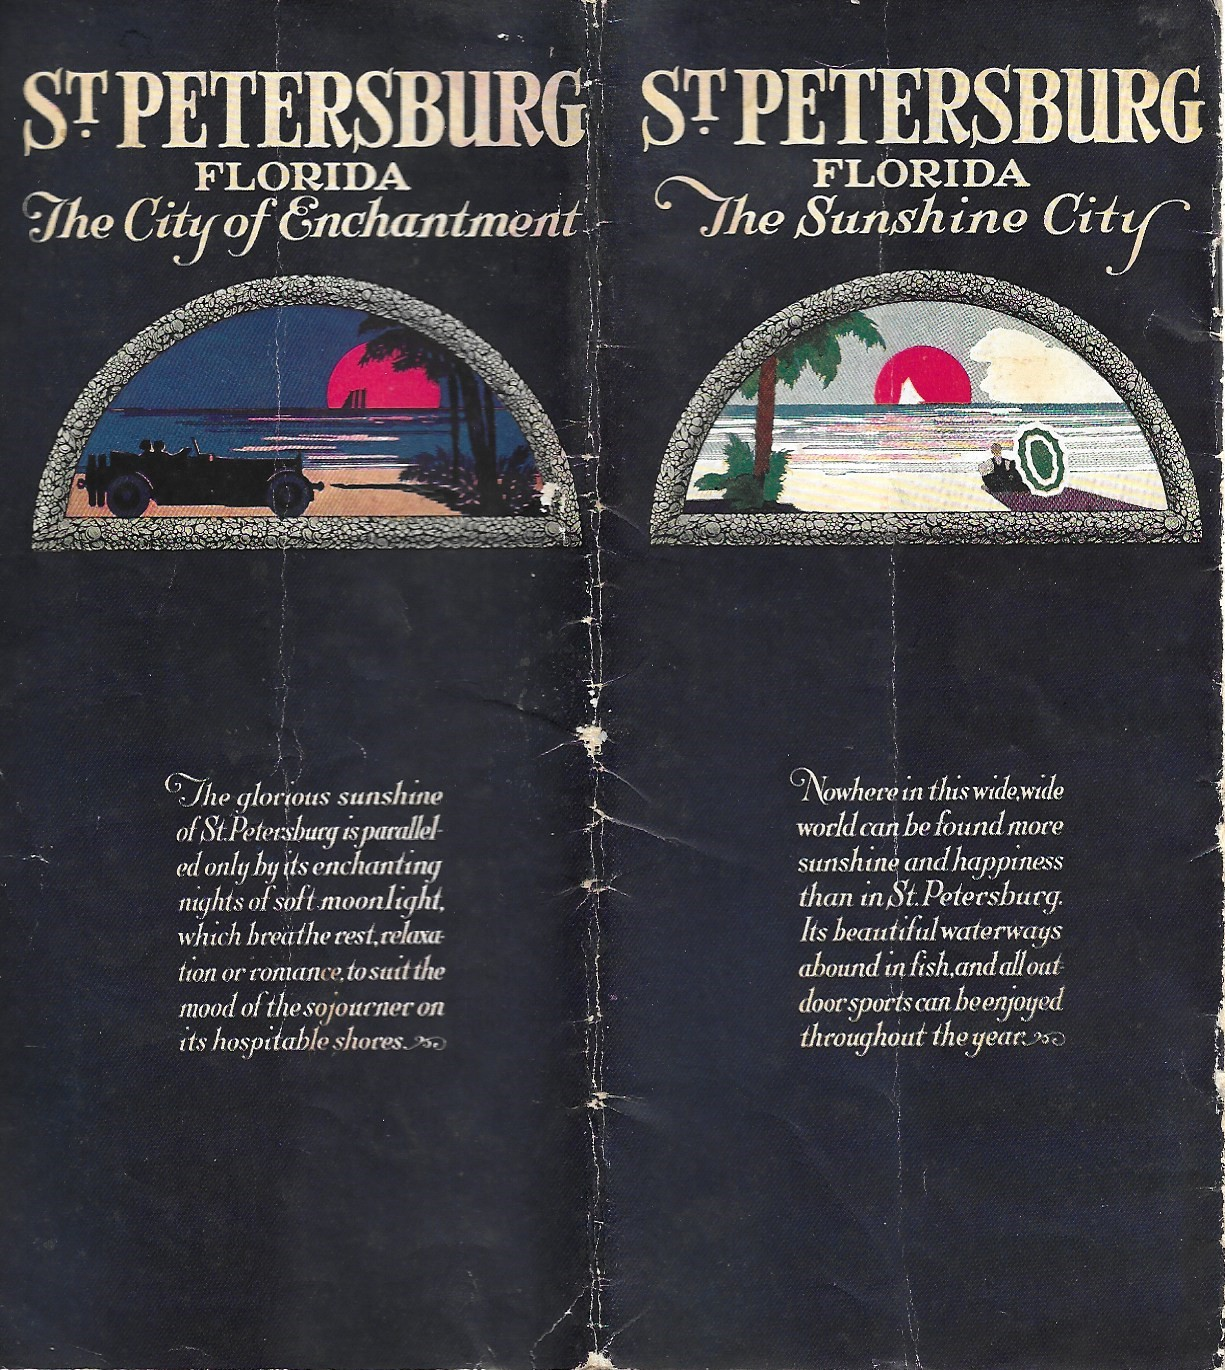 Image for St. Petersburg Florida, The Sunshine City, Tourism Brochure, 1925